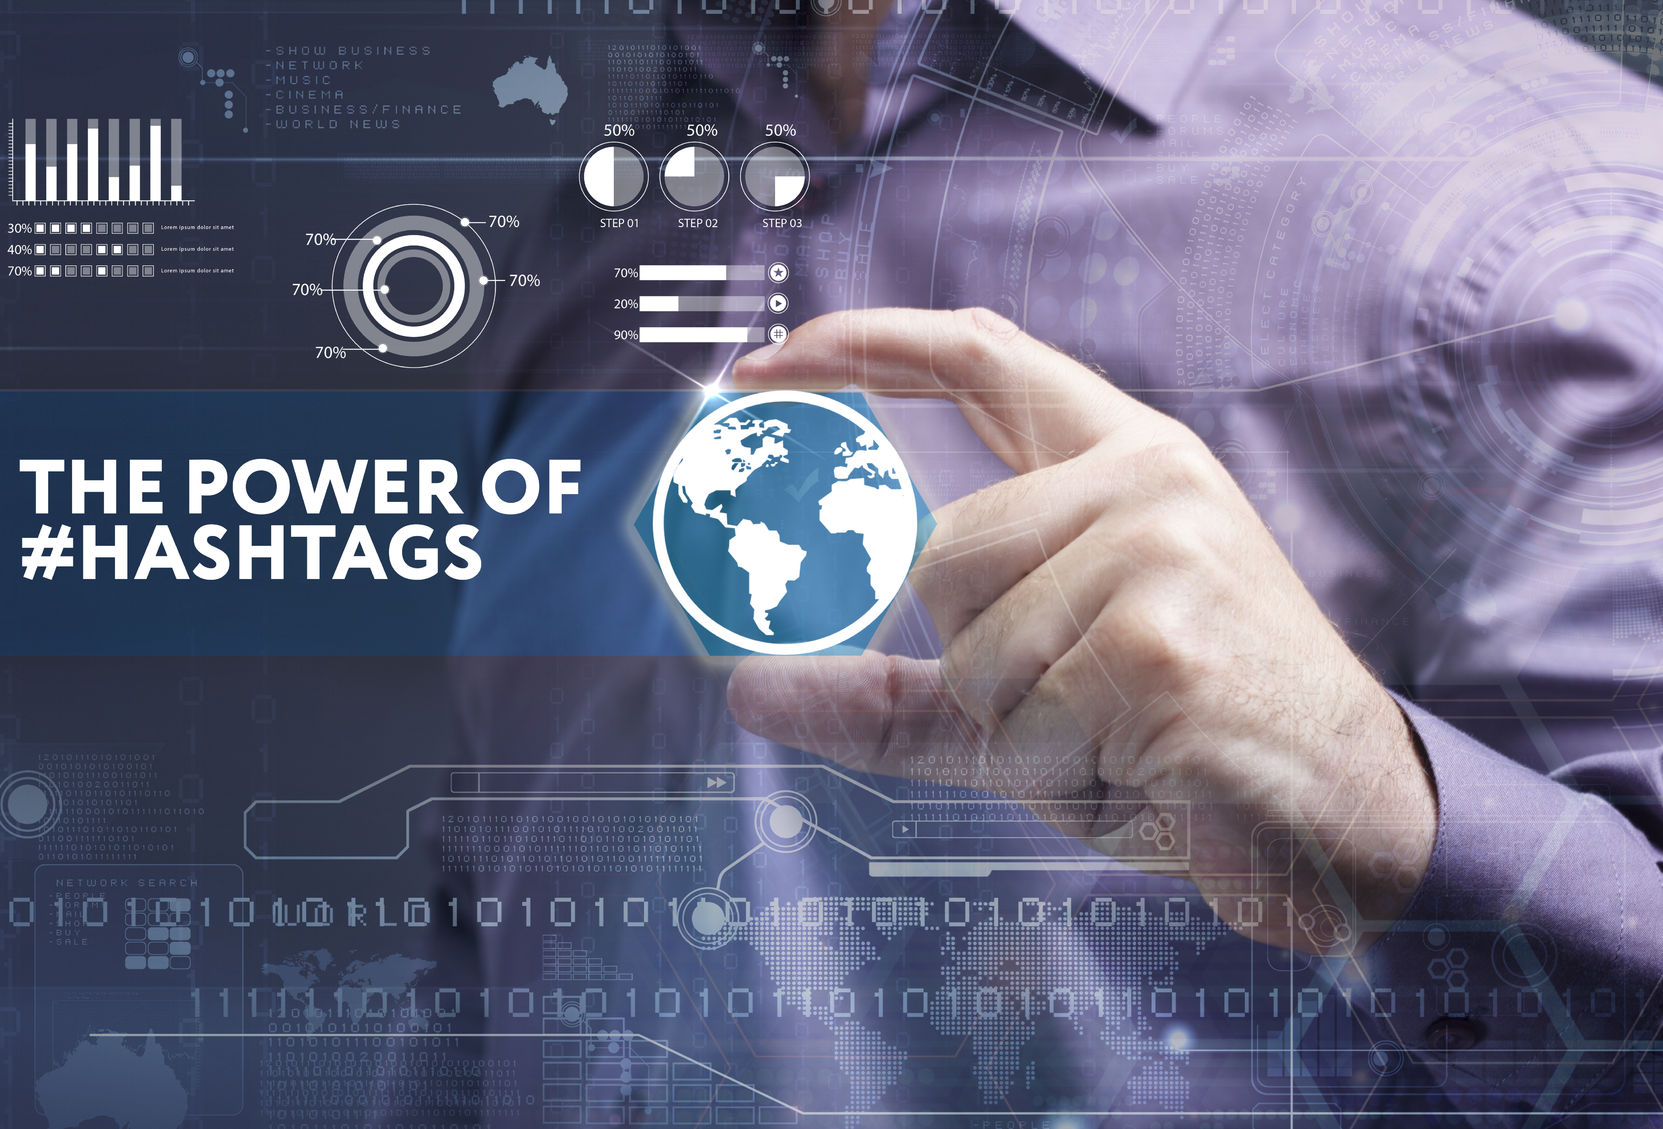 Harness the power of hashtags